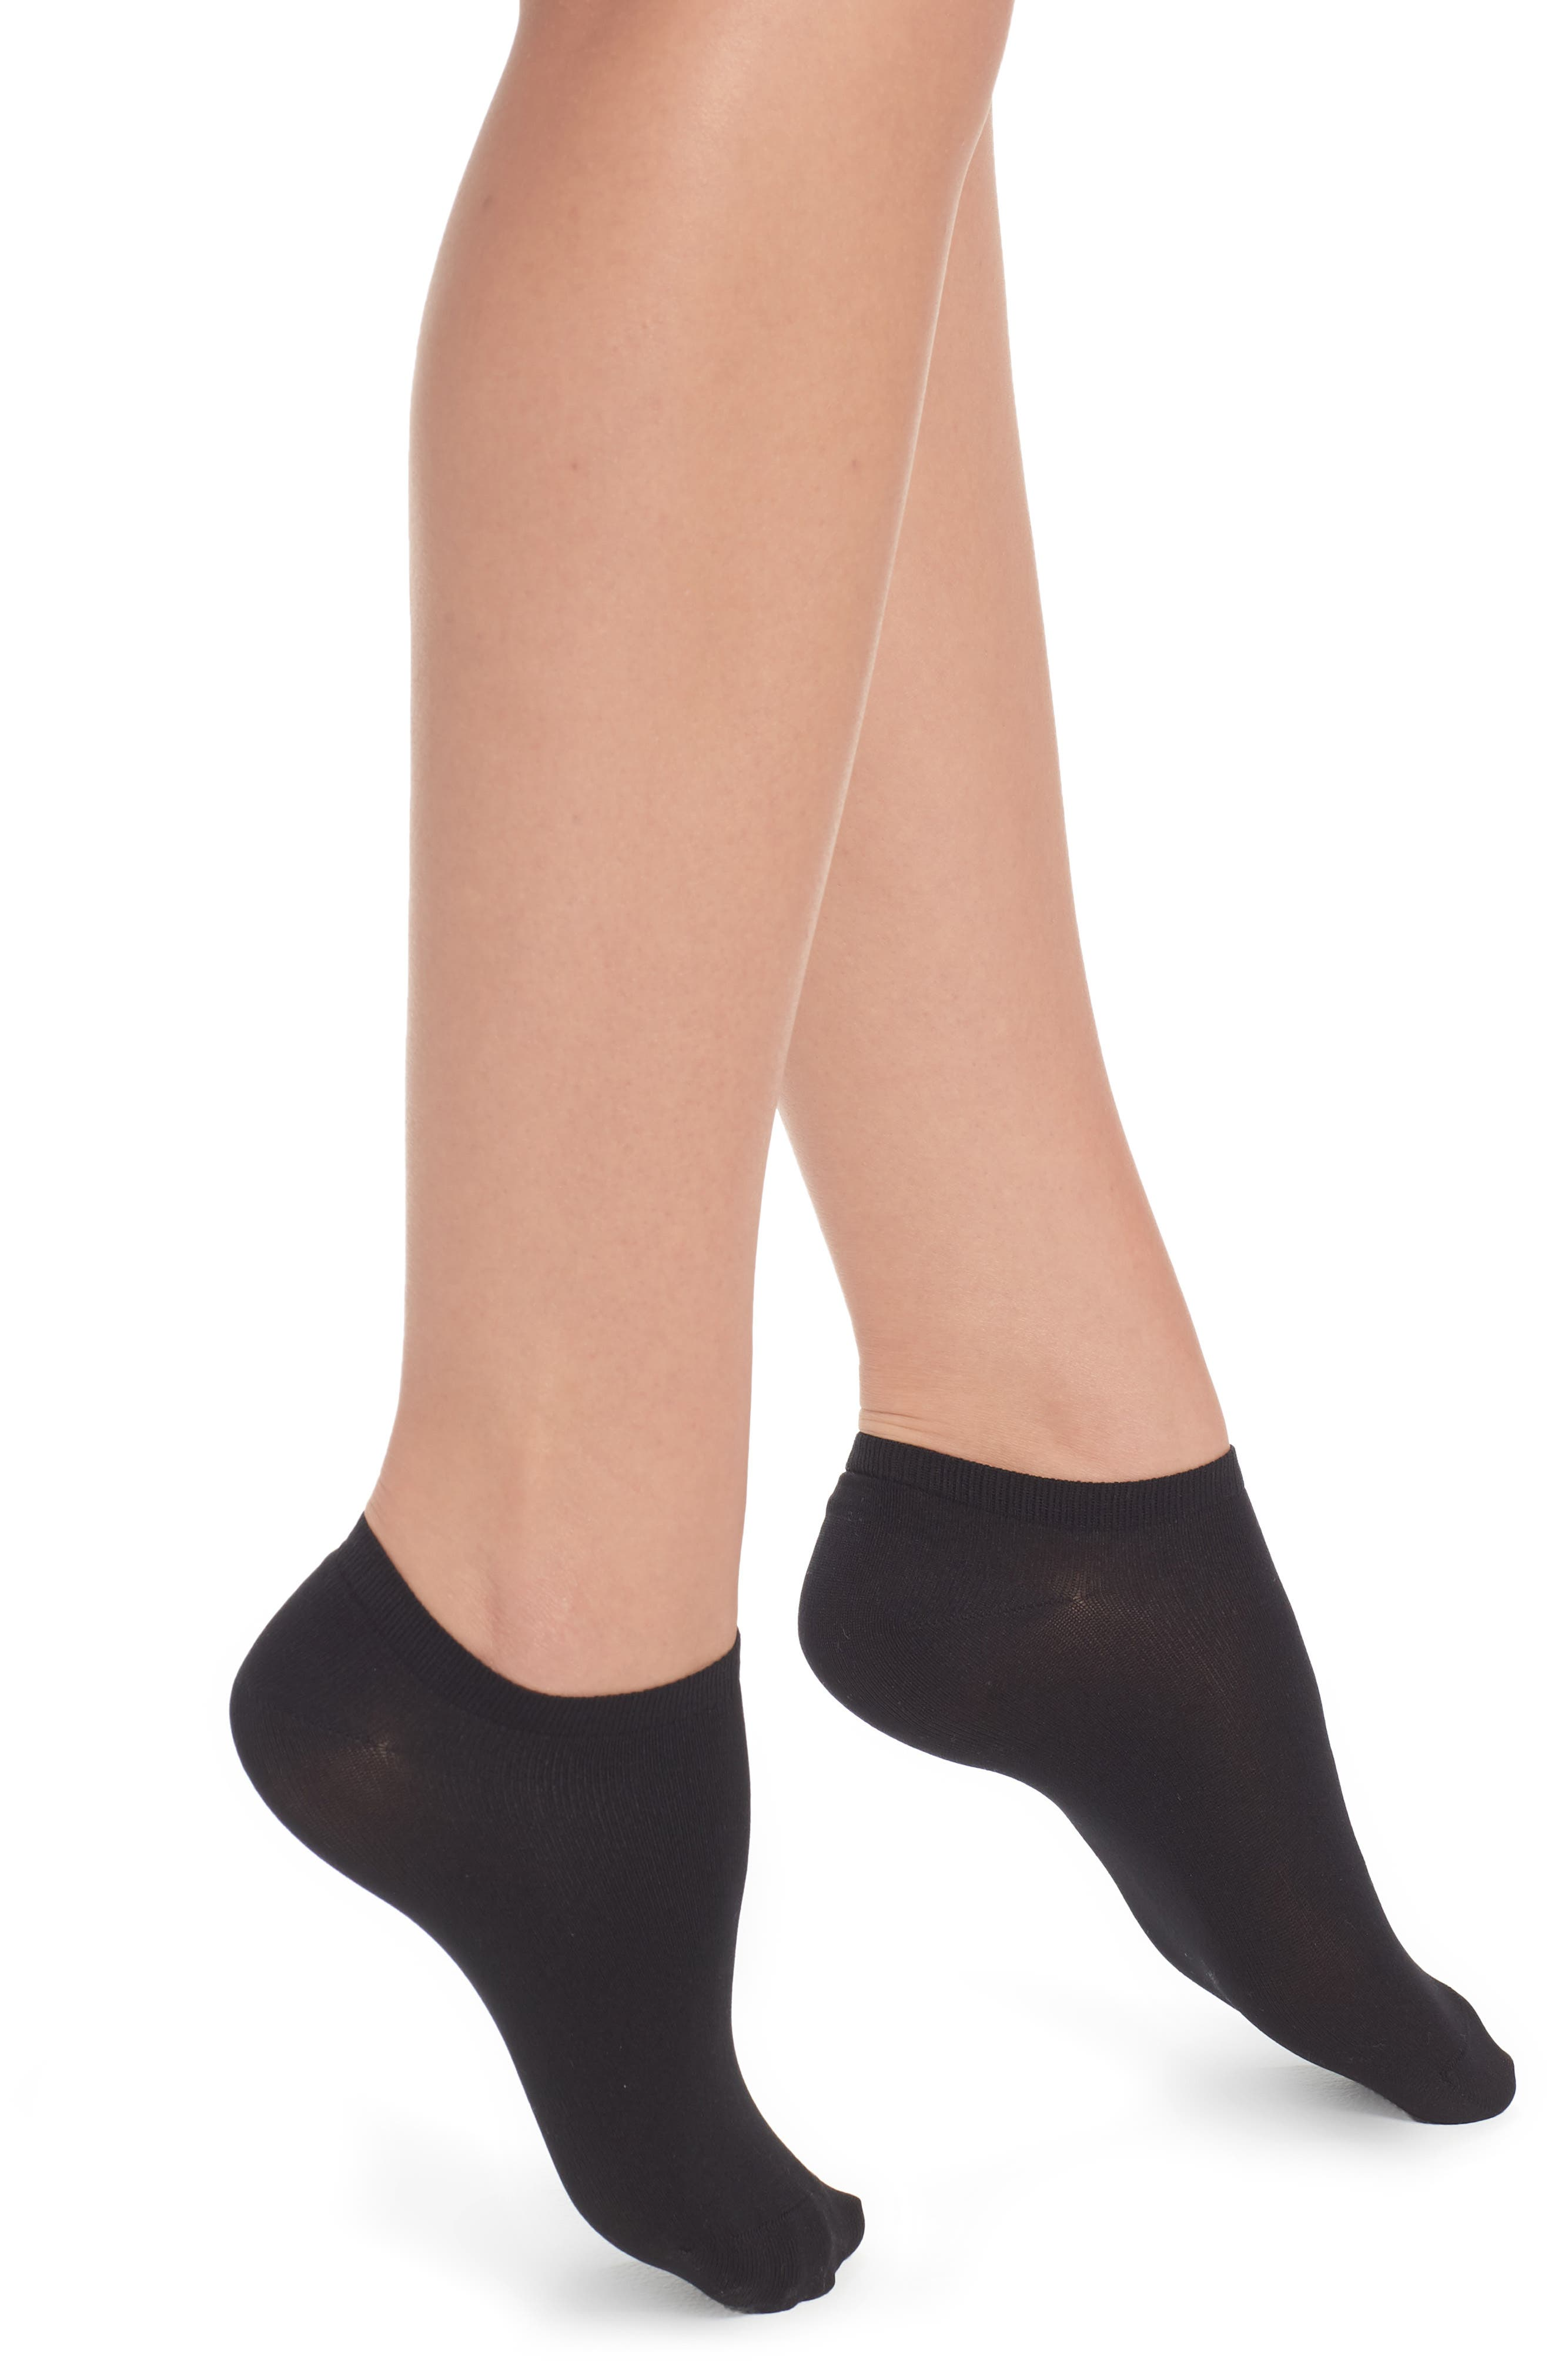 Sara Low-Cut Socks,                         Main,                         color, Black